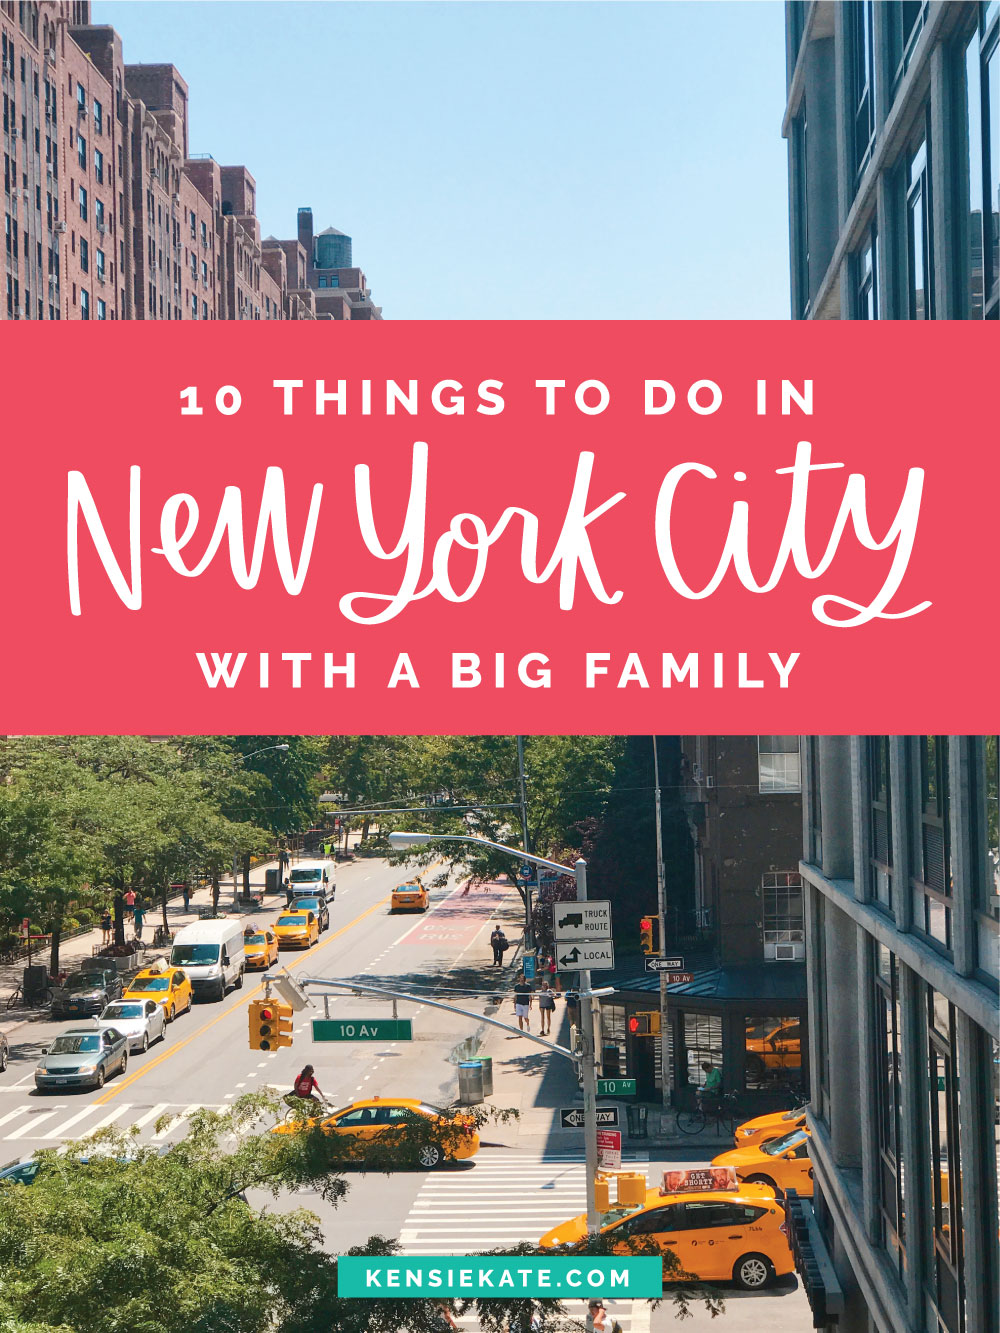 10-Things-to-do-in-New-York-City-with-a-Big-Family.jpg